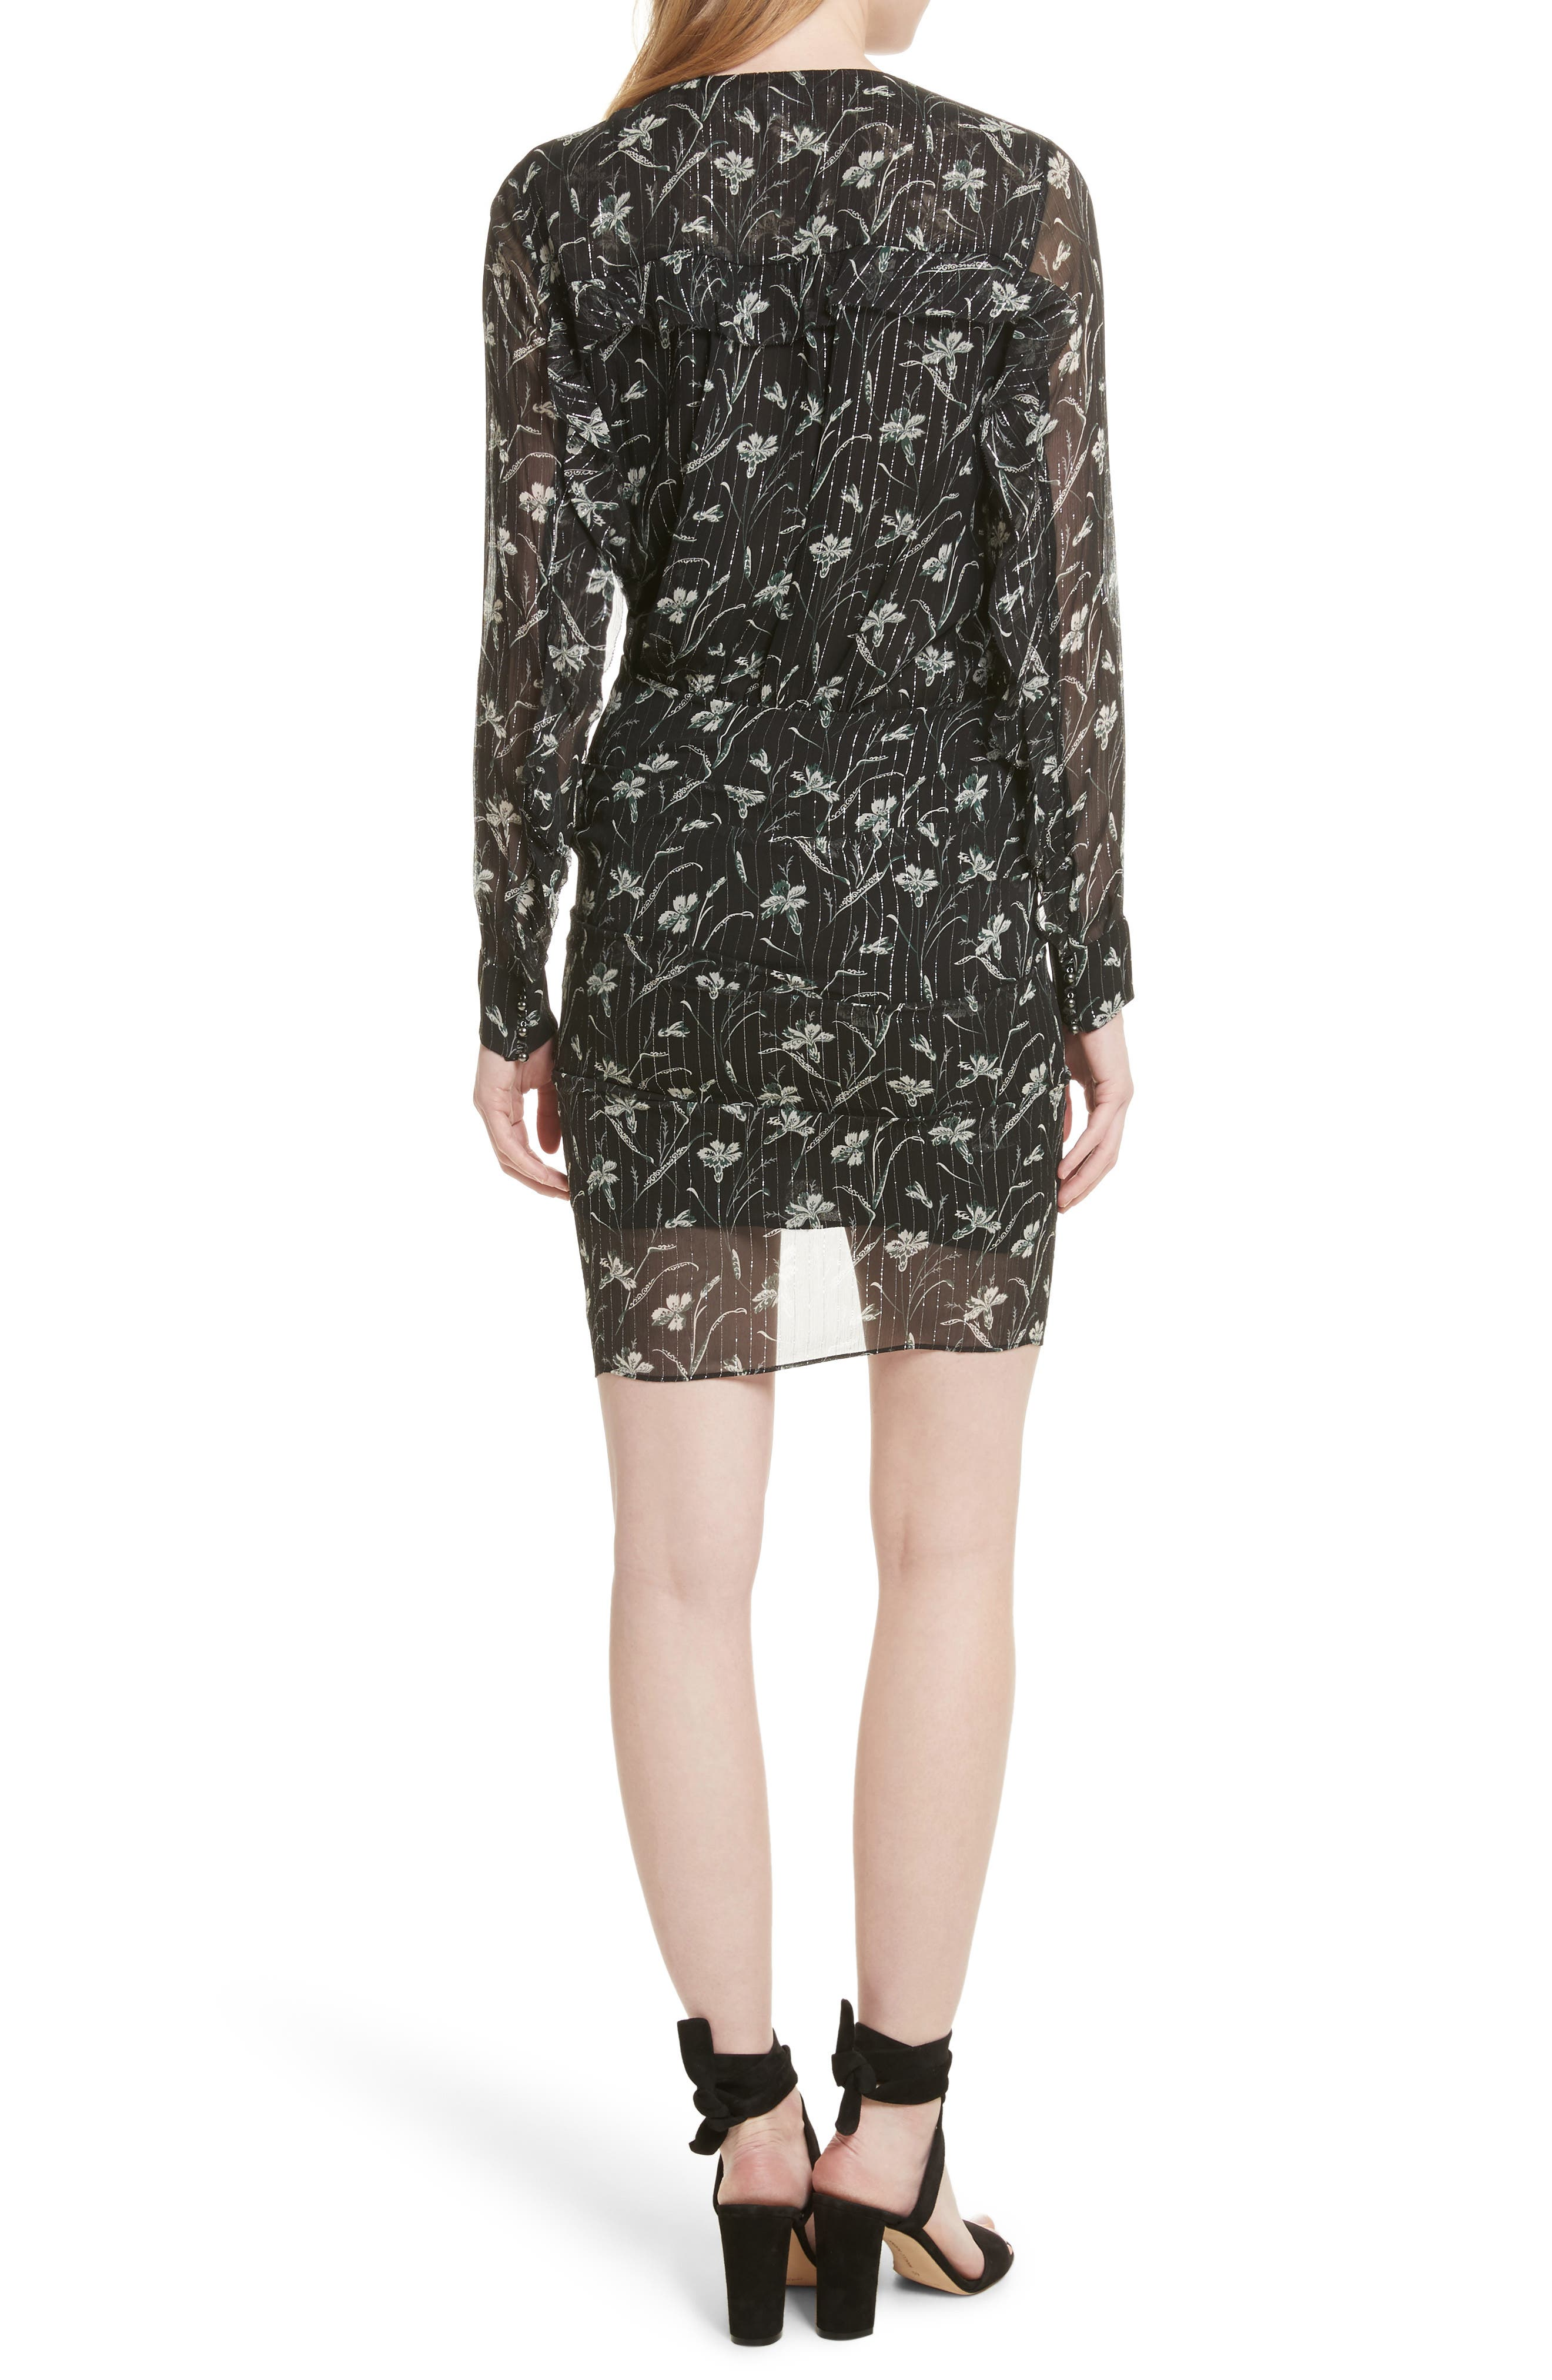 Fitzgerald Floral Print Metallic Chiffon Dress,                             Alternate thumbnail 2, color,                             301